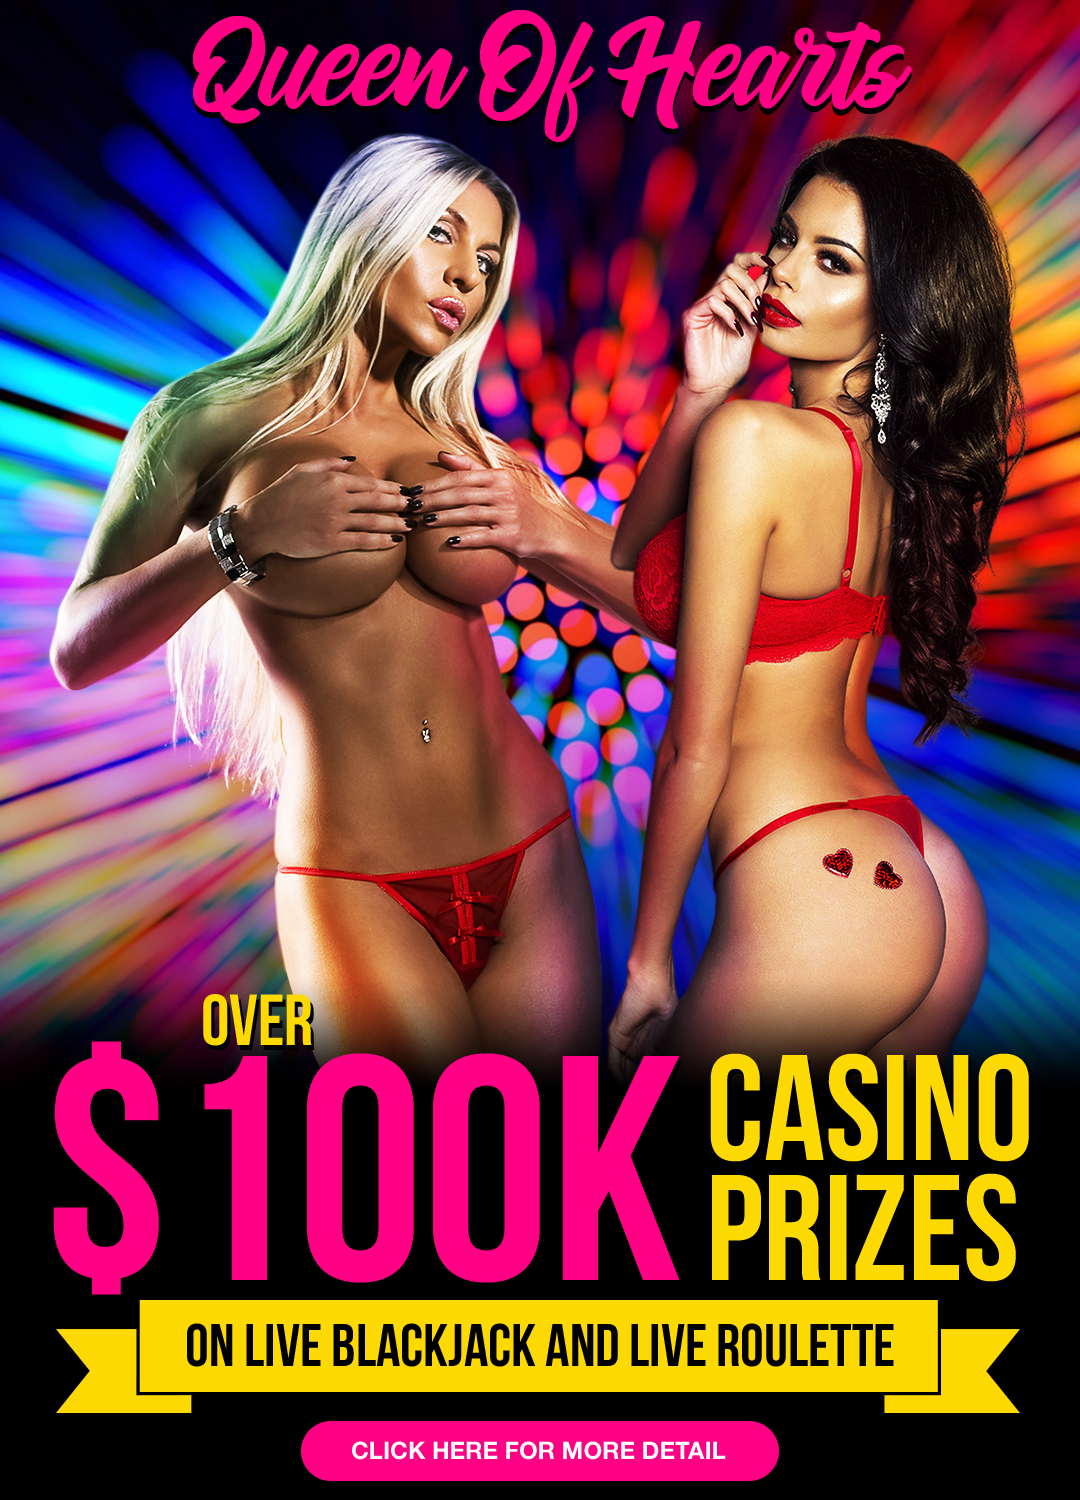 Queen of Hearts live casino bonus Prizes 100K!